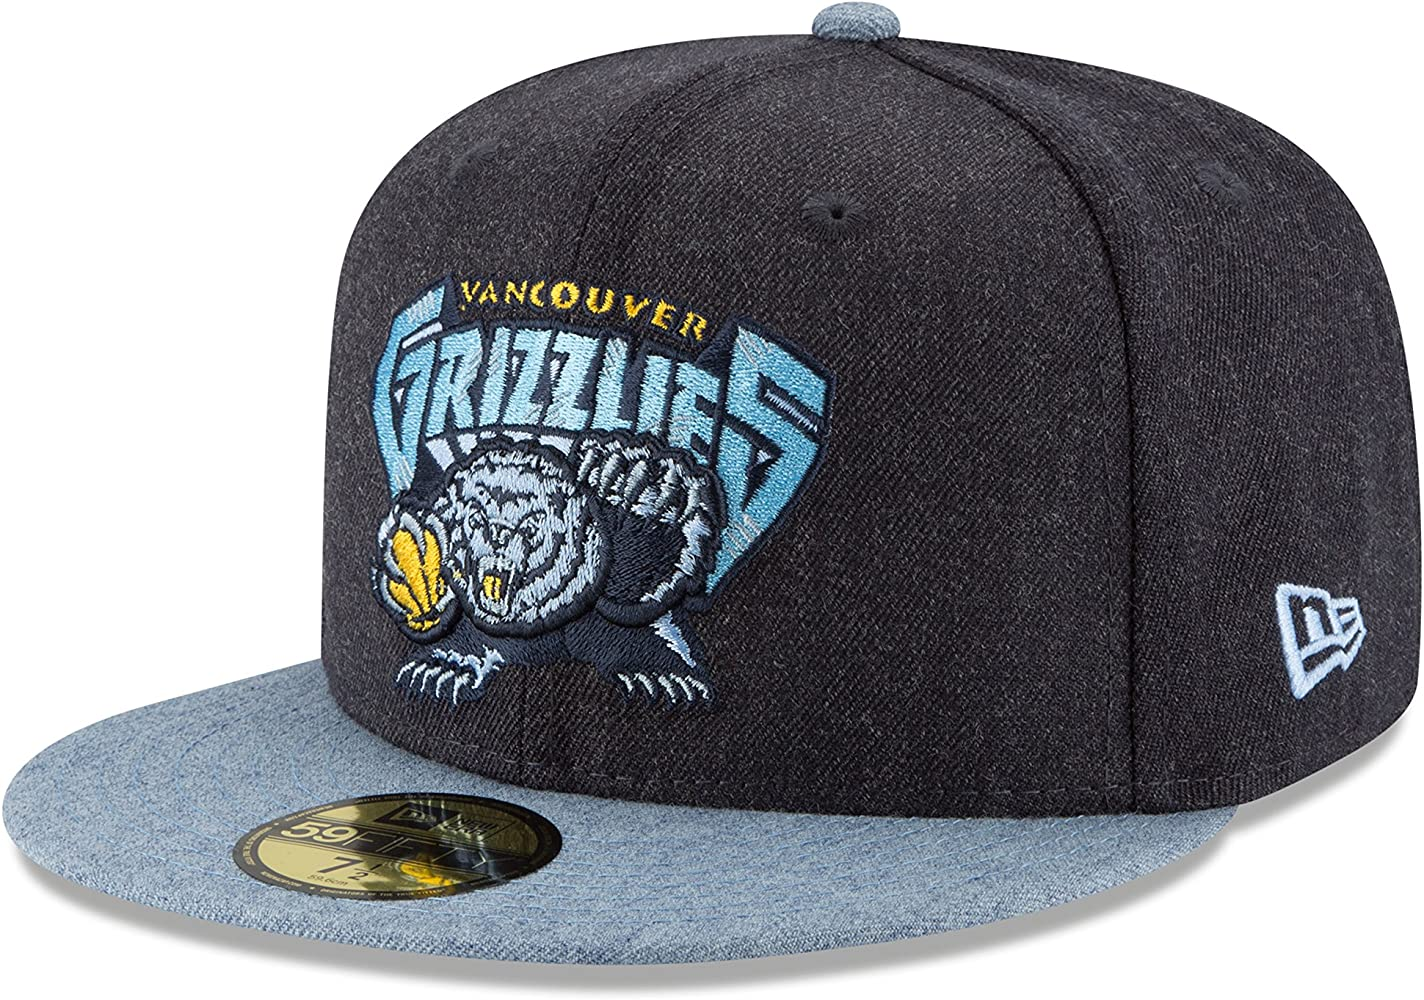 Vancouver Grizzlies Dark Gray White Teal New Era 59Fifty Fitted Hat Red Lid